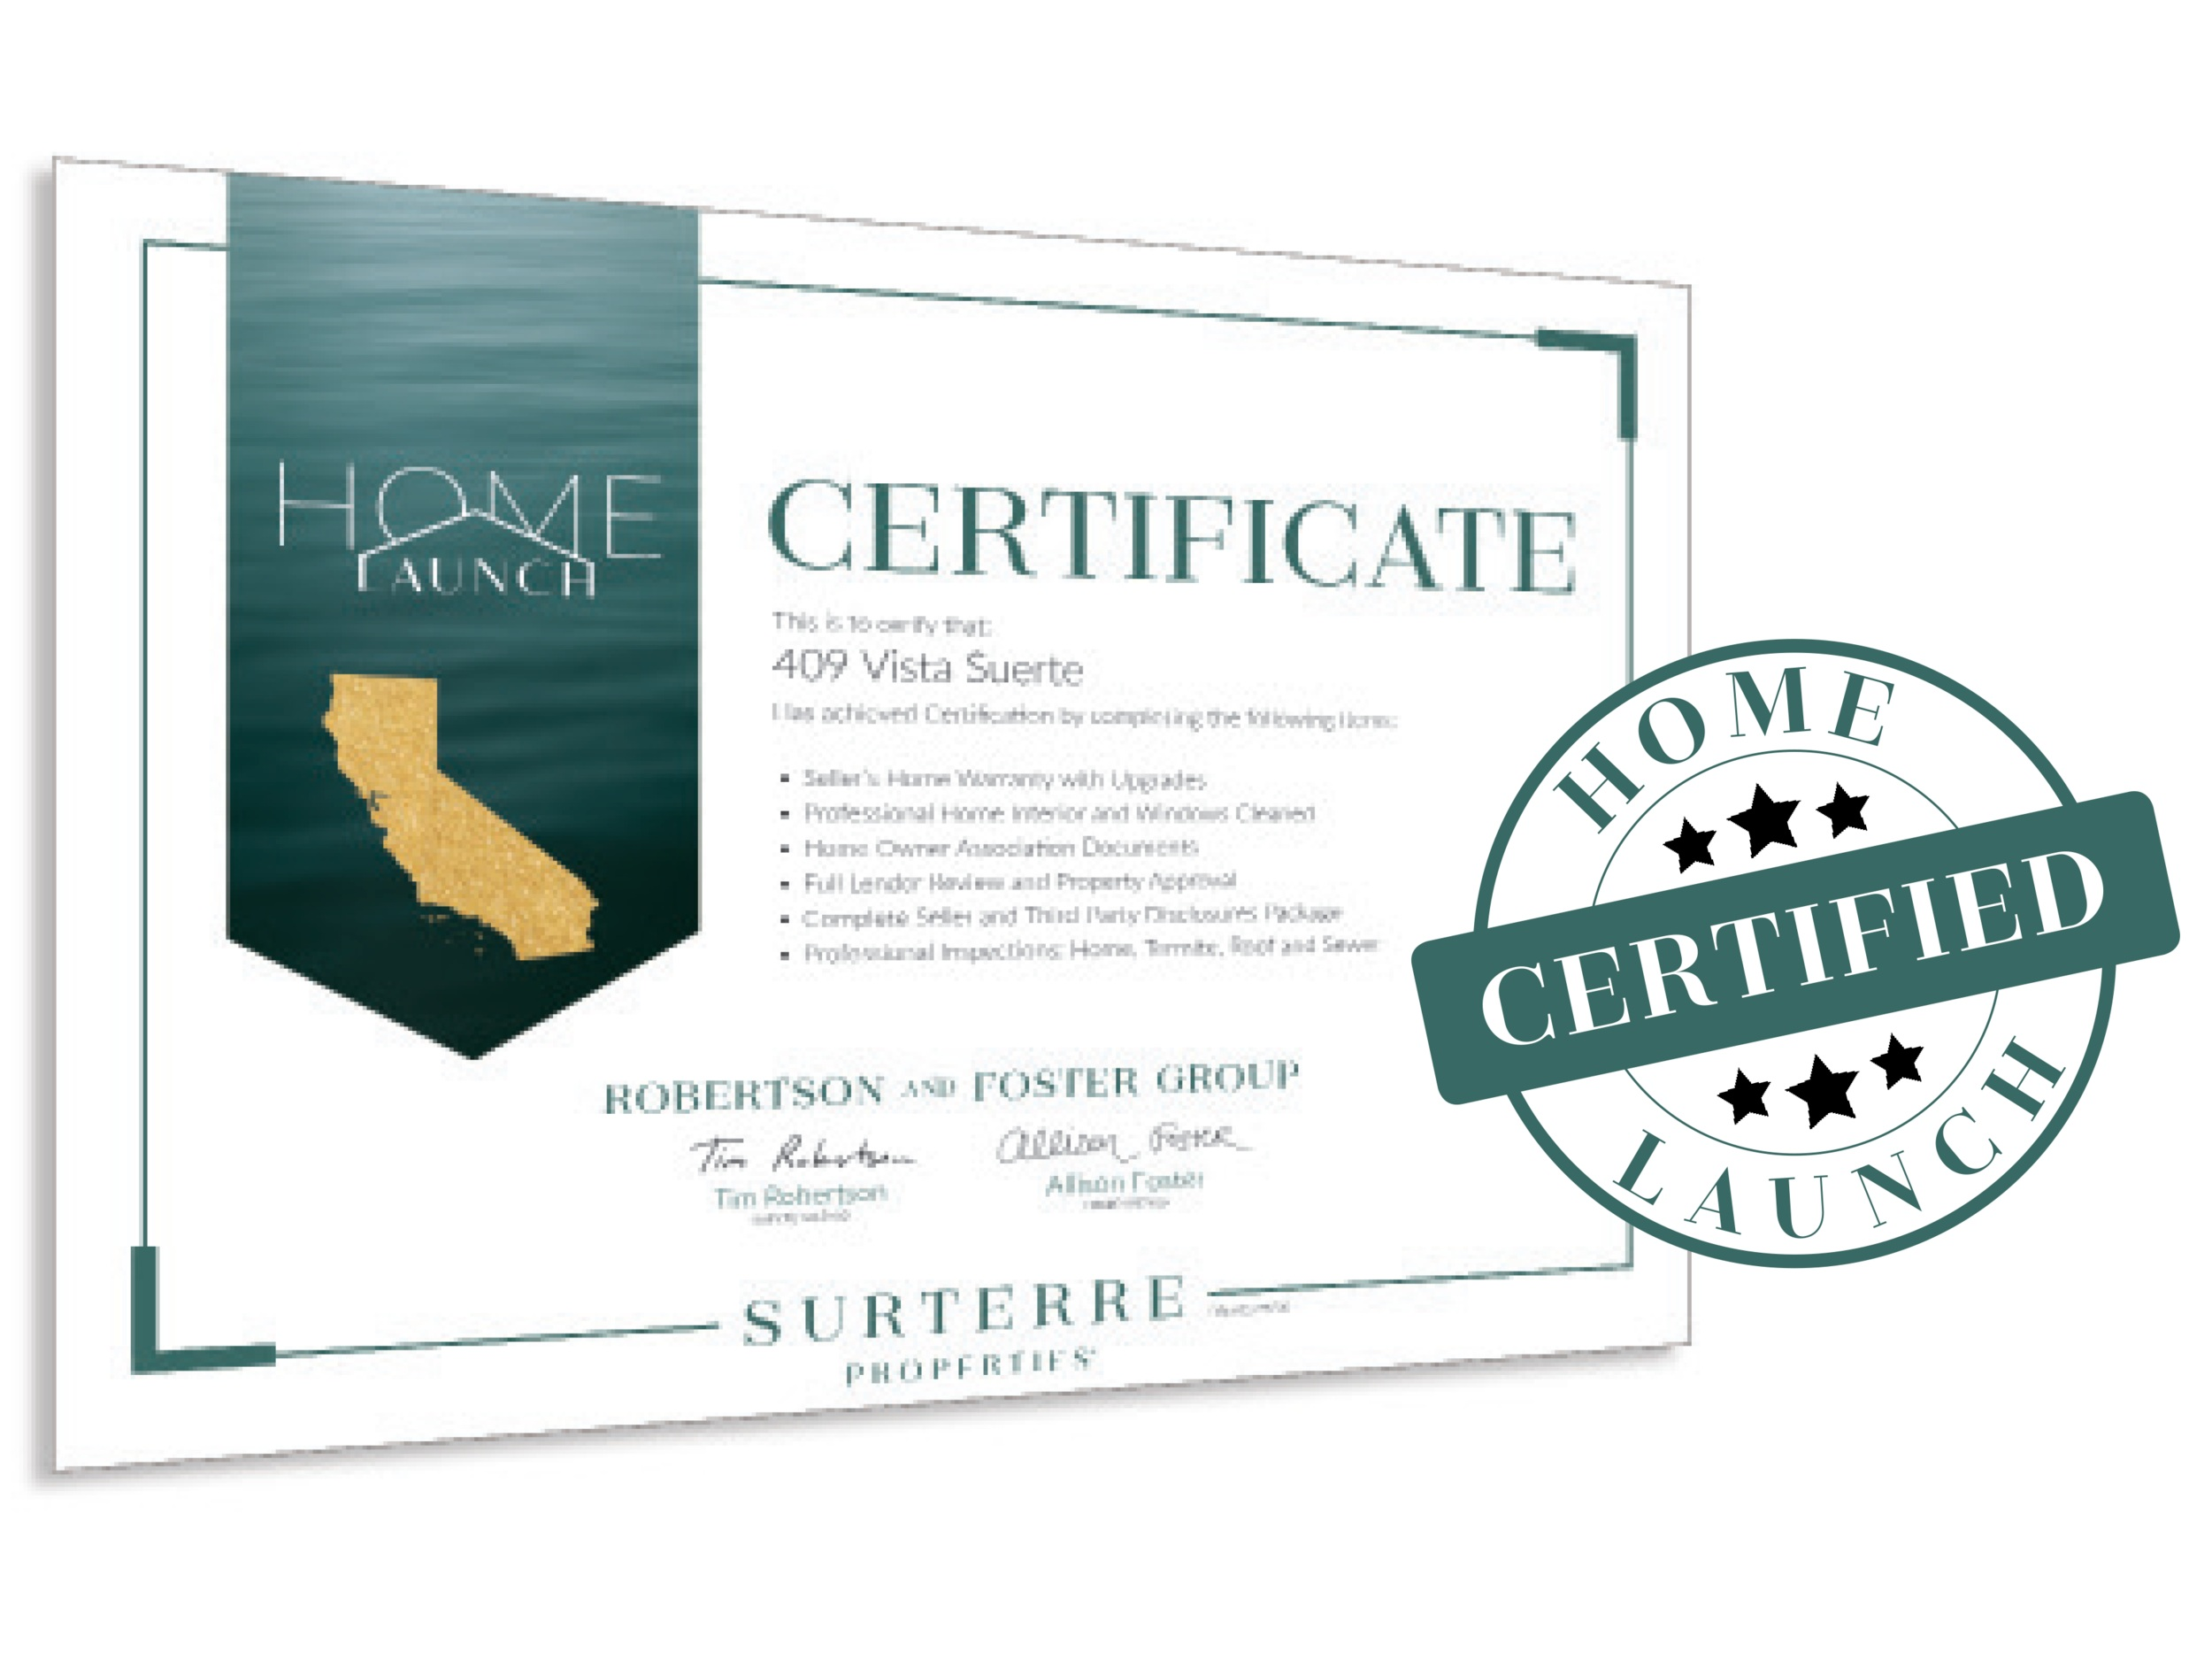 1 CERTIFICATION - Robertson & Foster Group cover up to $2,000 to certify your property.· Warranty· Inspections· Disclosures